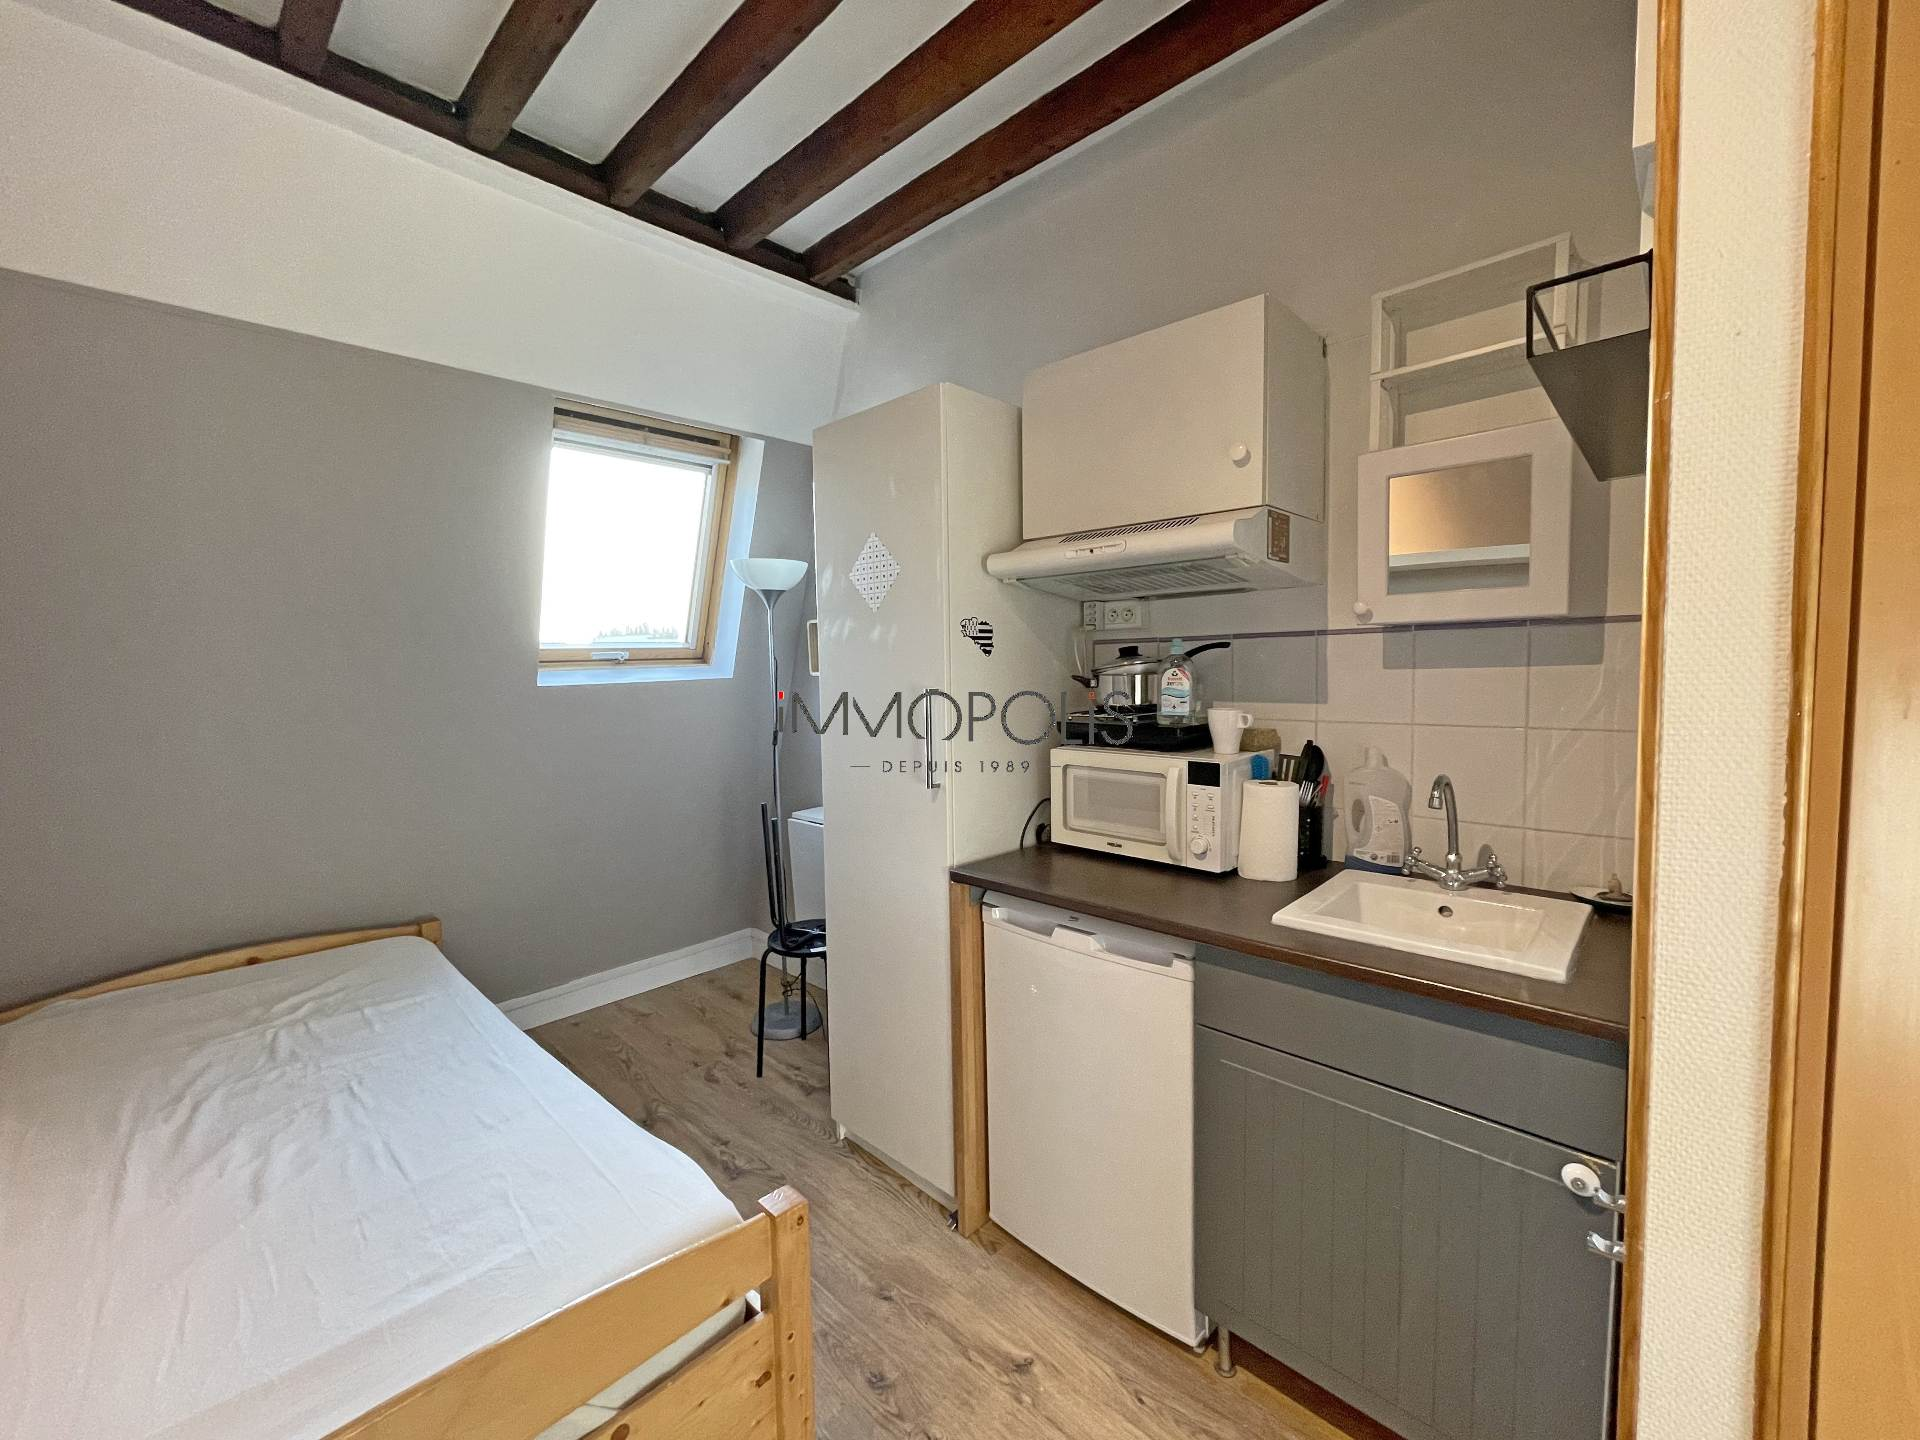 District Europe (rue Clapeyron in the 8th arrondissement), Legally launched studio of 9.88 m² Law Carrez located in a beautiful well maintained building 5